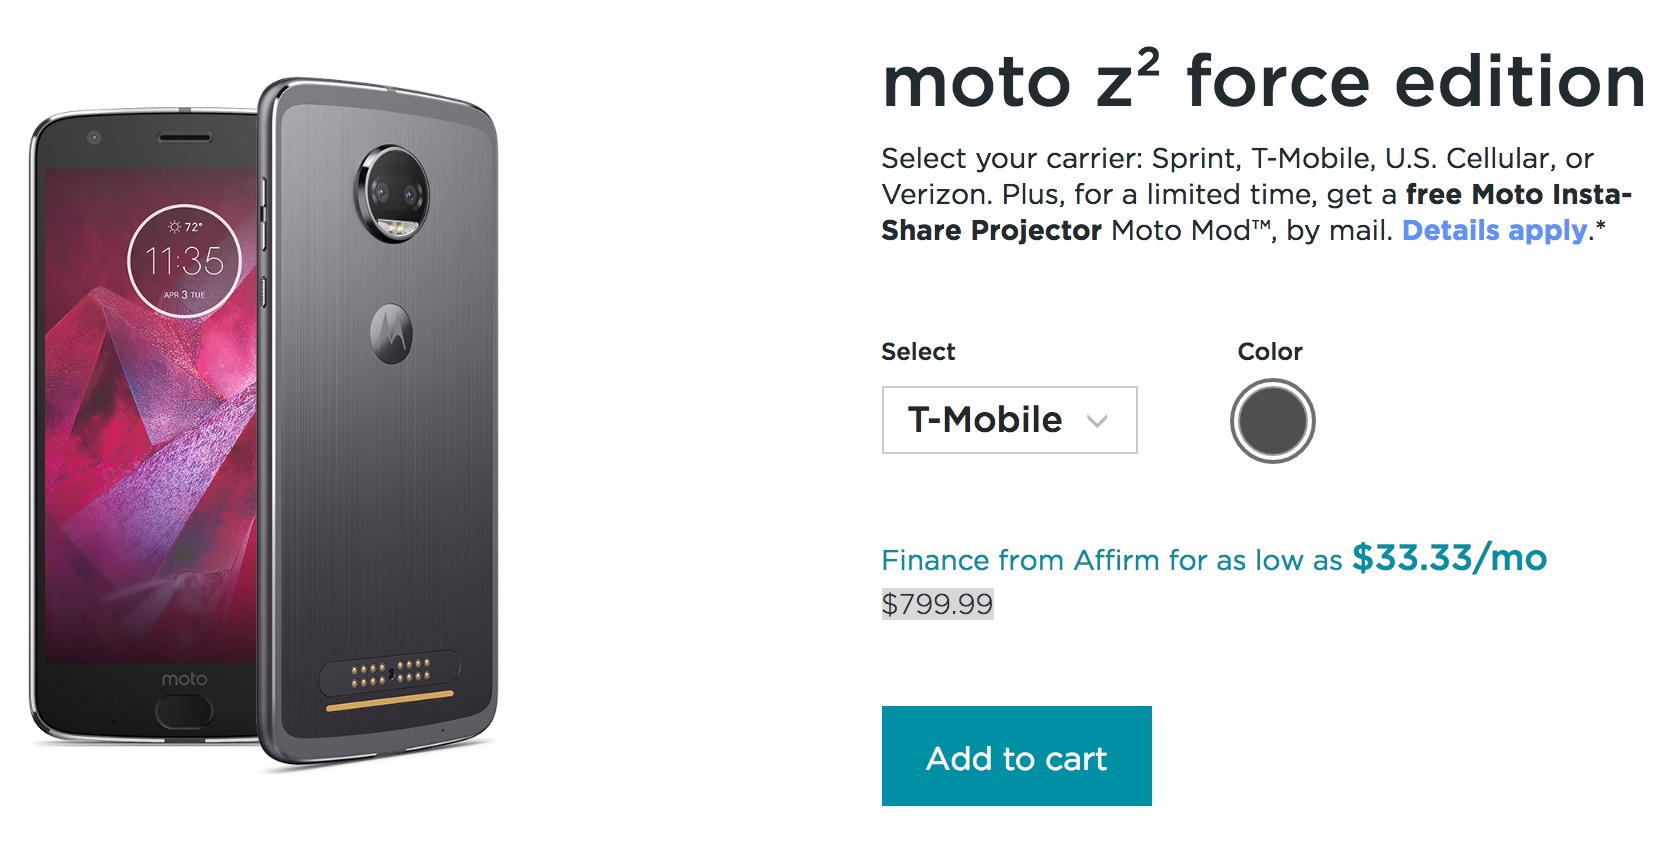 When and Where to Buy: Motorola Moto Z2 Force